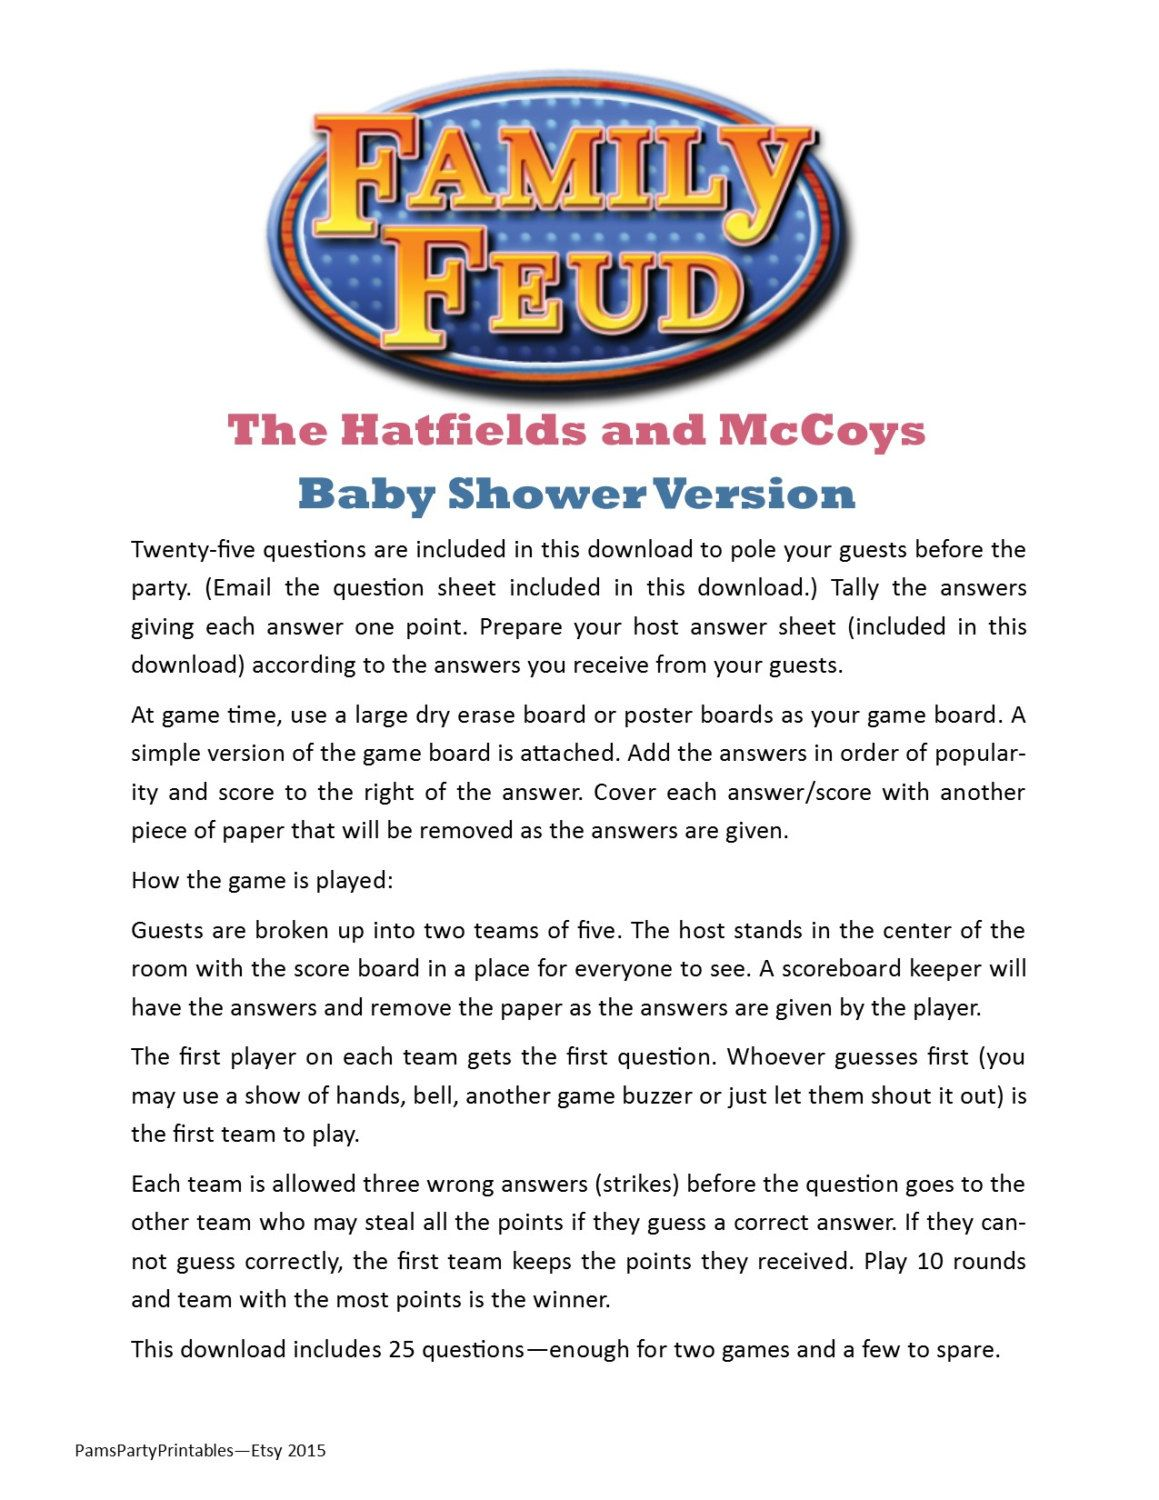 Baby Shower Family Feud   Printable Game   Hatfields And McCoys Game    Party Game